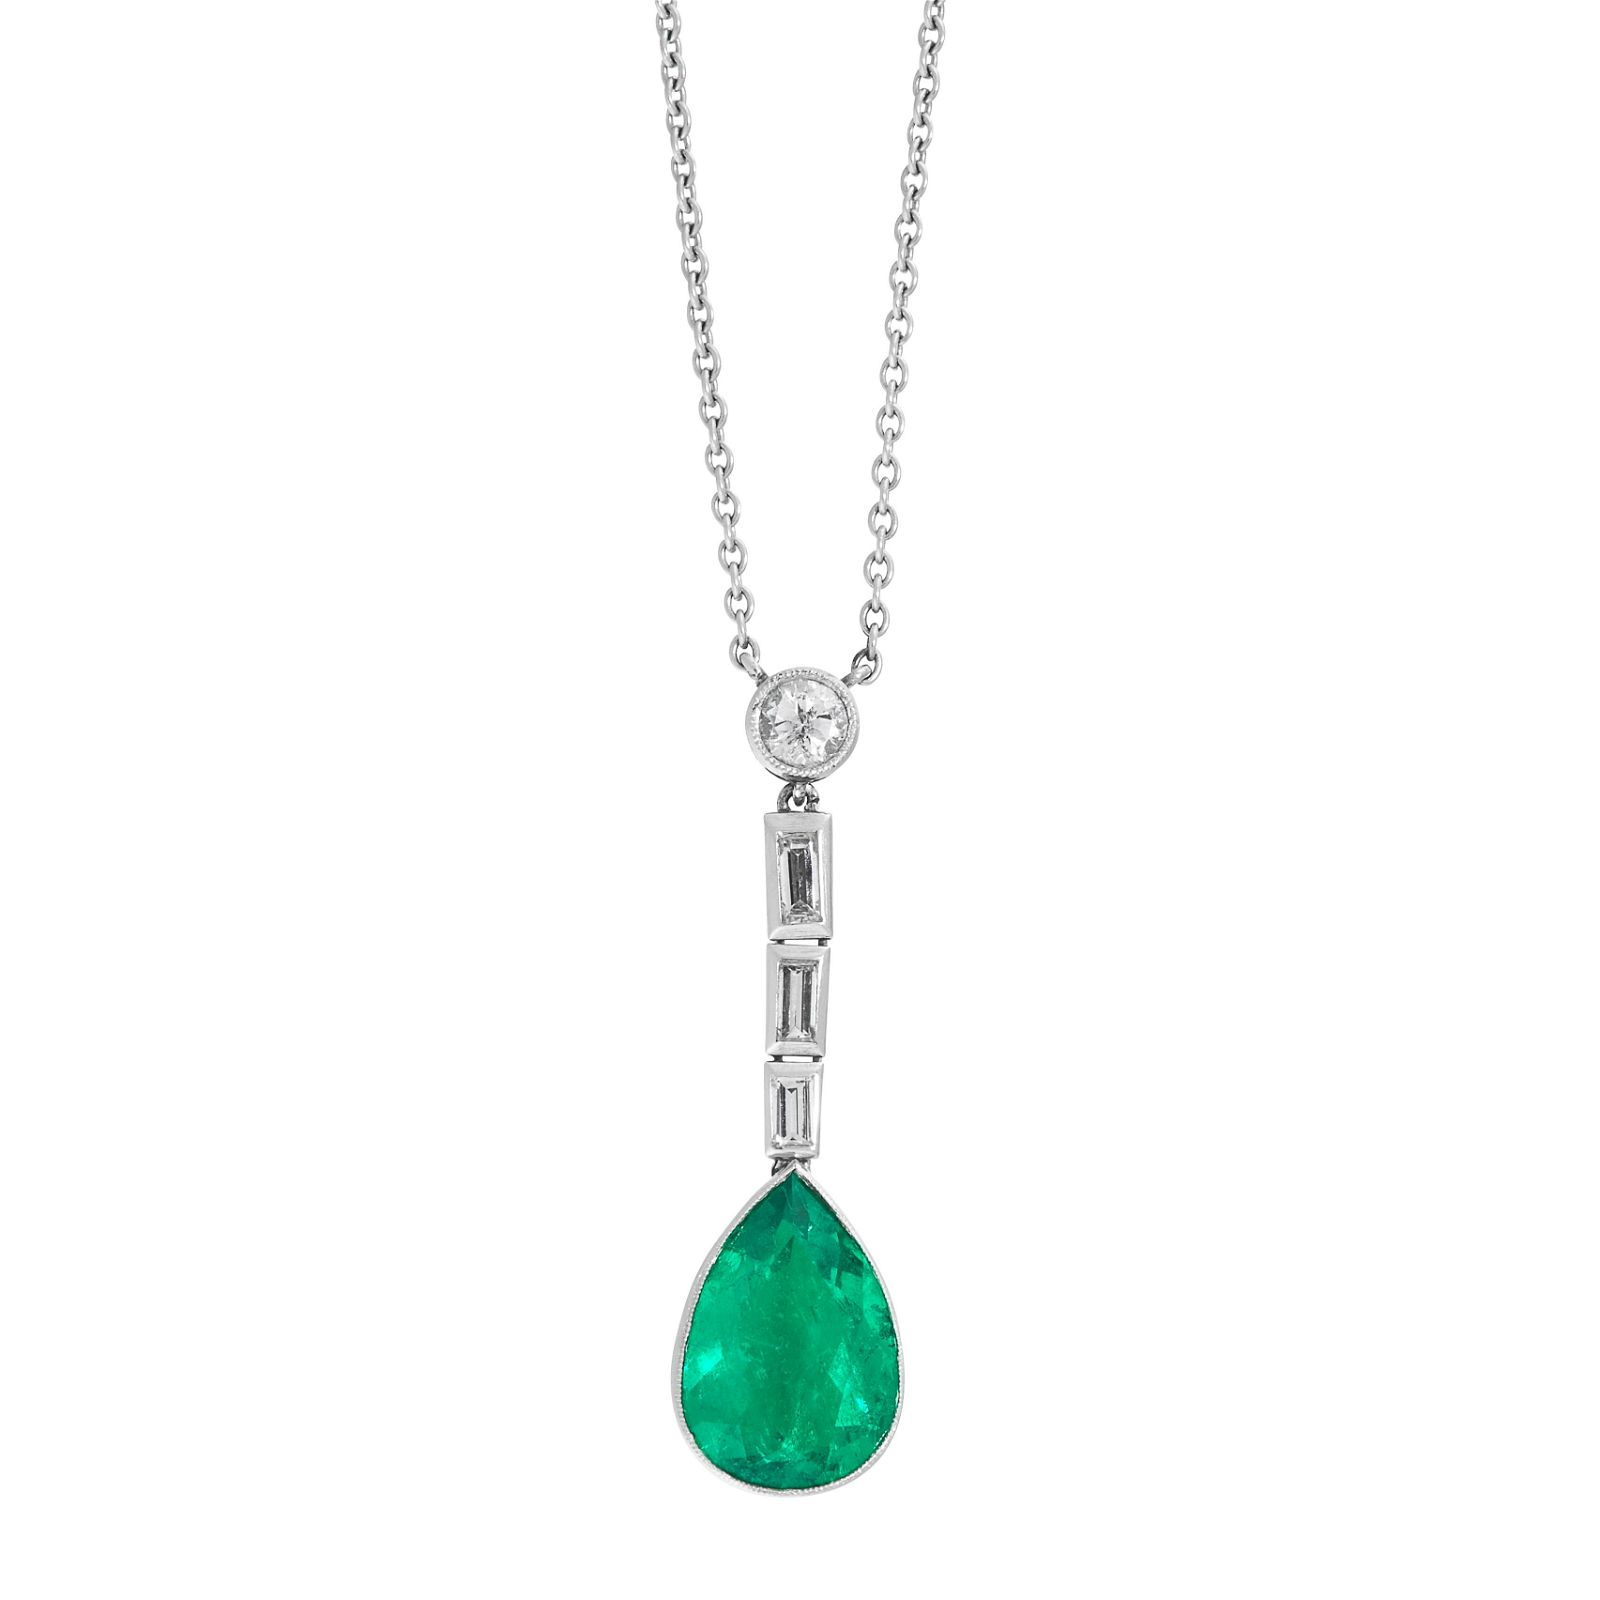 A COLOMBIAN EMERALD AND DIAMOND PENDANT NECKLACE in